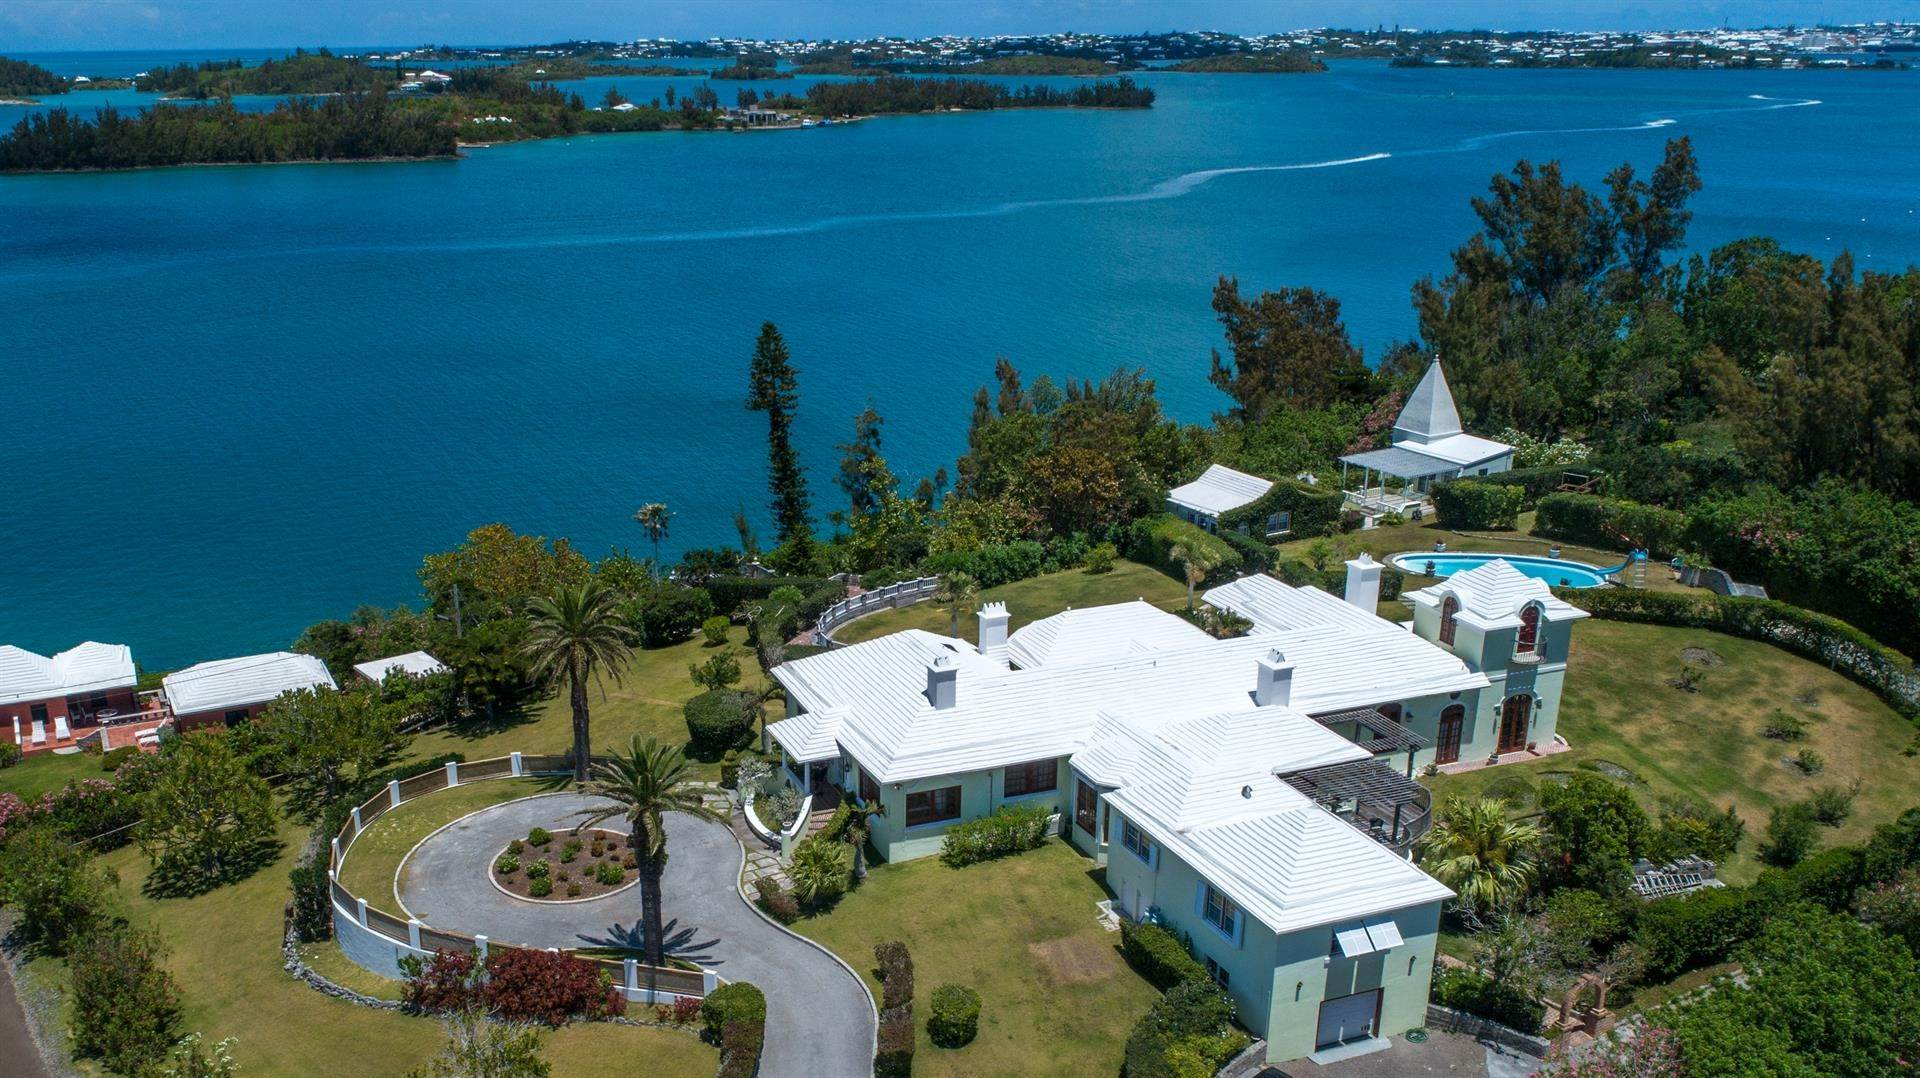 5. Vid Vattnet för Försäljning vid Heron Hill On The Great Sound Heron Hill On The Great Sound, 31 Riddell's Bay Road,Bermuda – Sinclair Realty